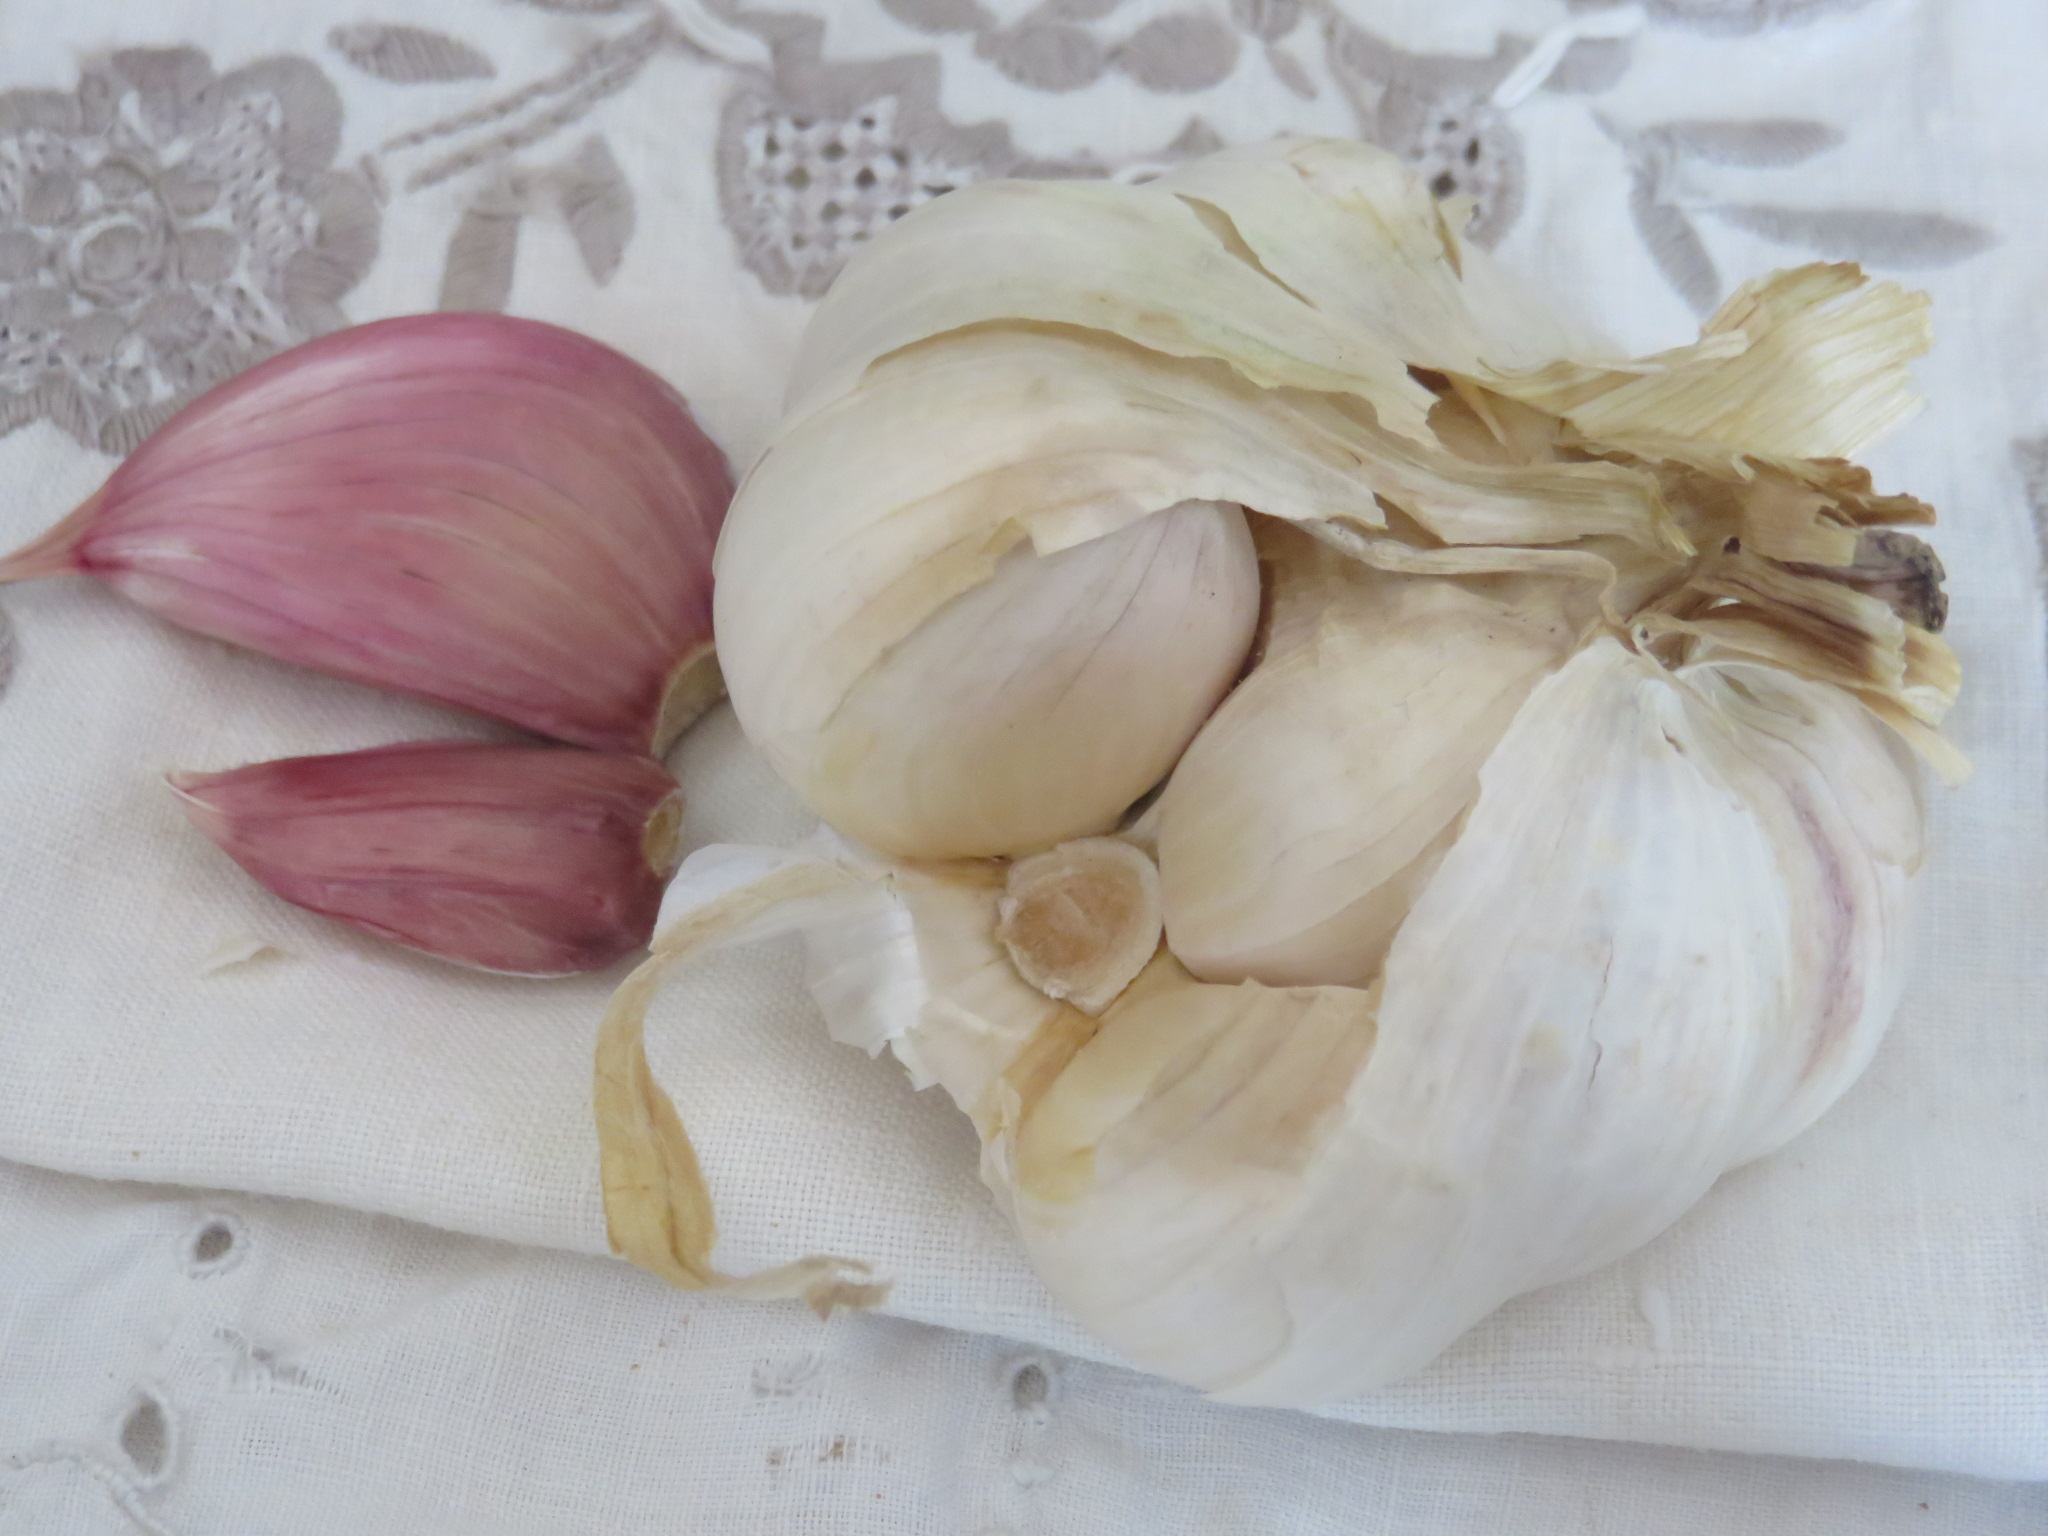 Garlic is a super herb for its wide spectrum of protection against degenerative disease